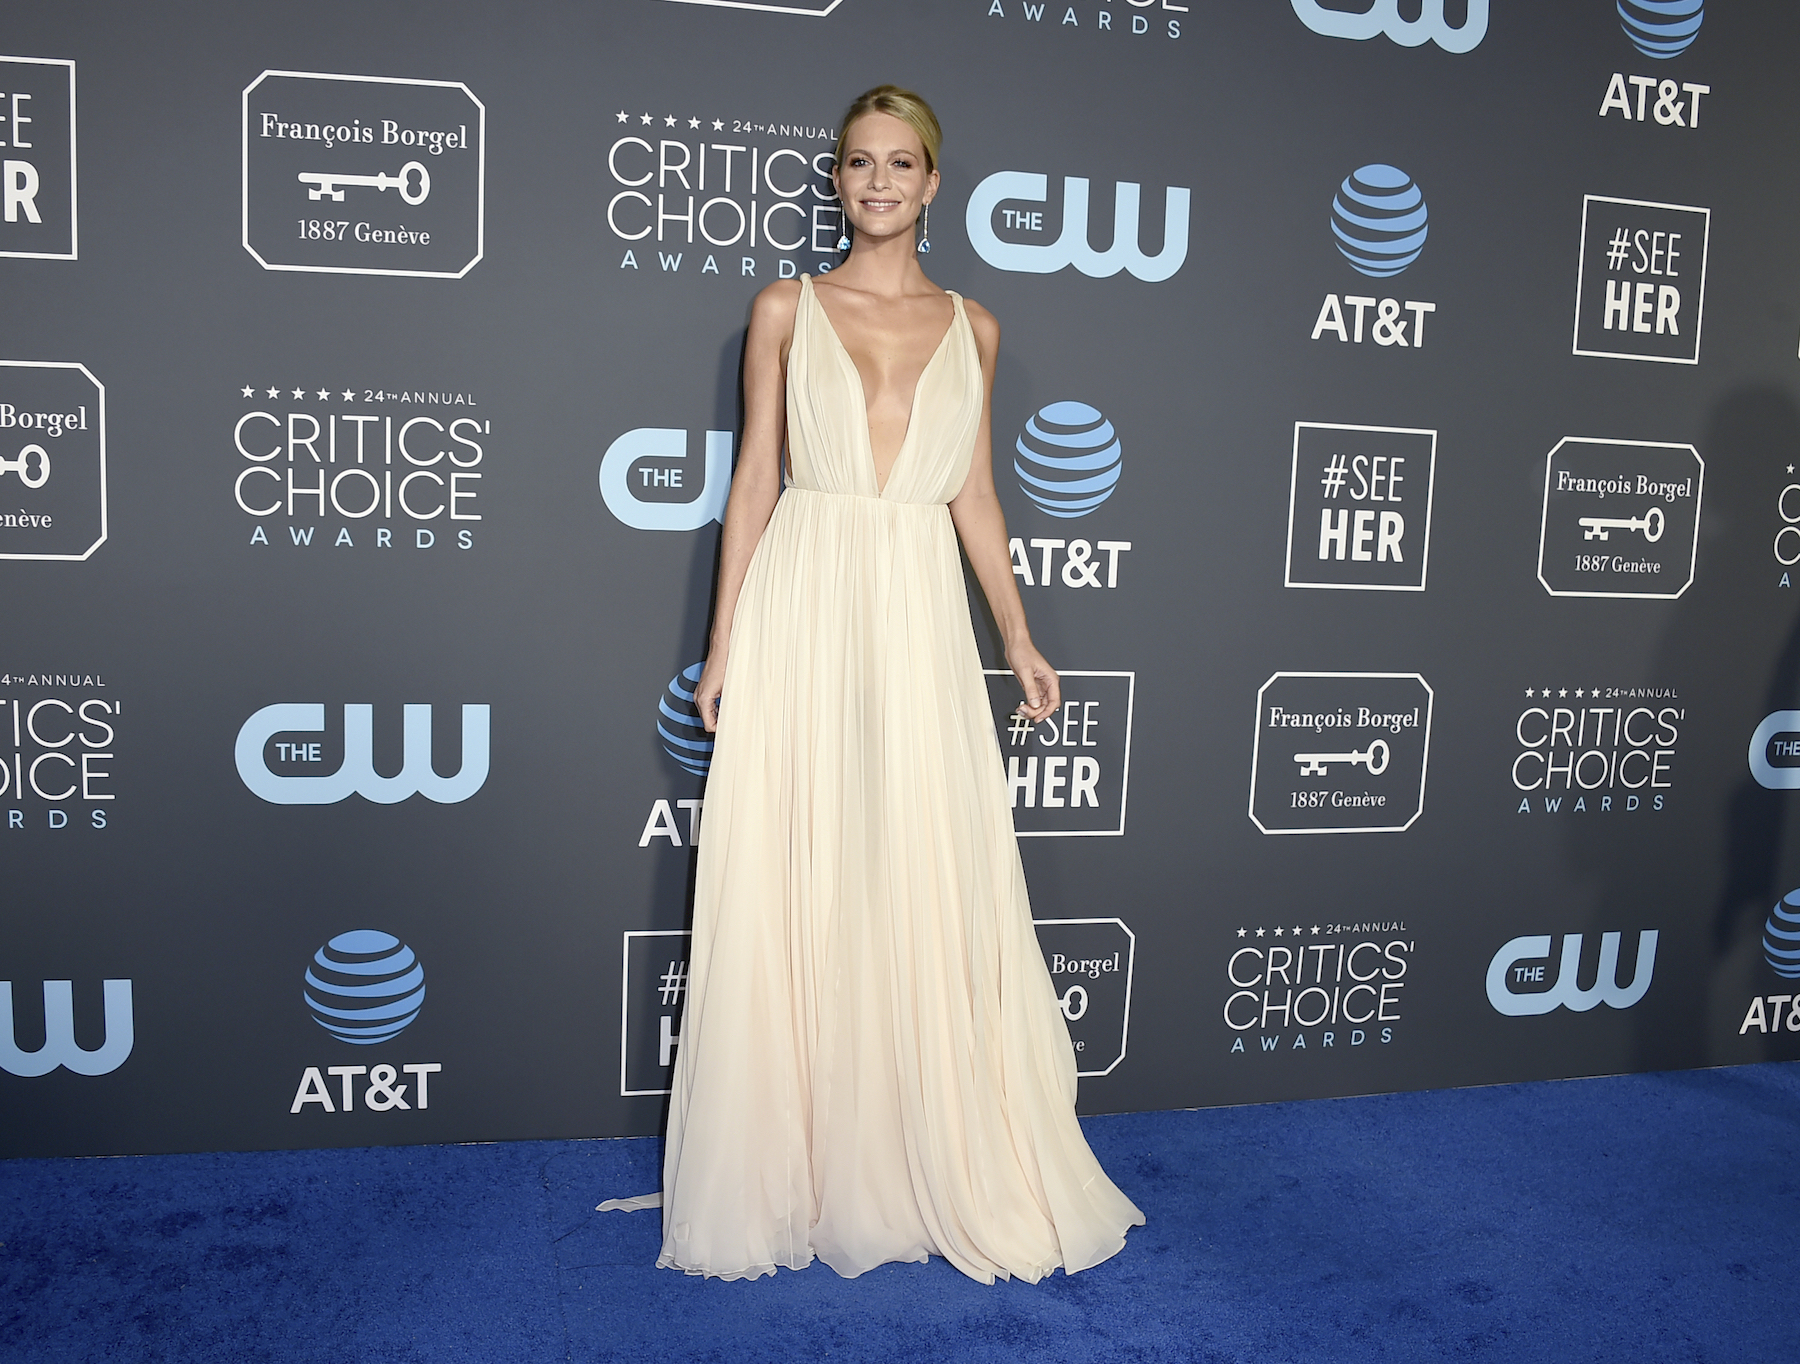 "<div class=""meta image-caption""><div class=""origin-logo origin-image ap""><span>AP</span></div><span class=""caption-text"">Poppy Delevingne arrives at the 24th annual Critics' Choice Awards on Sunday, Jan. 13, 2019, at the Barker Hangar in Santa Monica, Calif. (Jordan Strauss/Invision/AP)</span></div>"